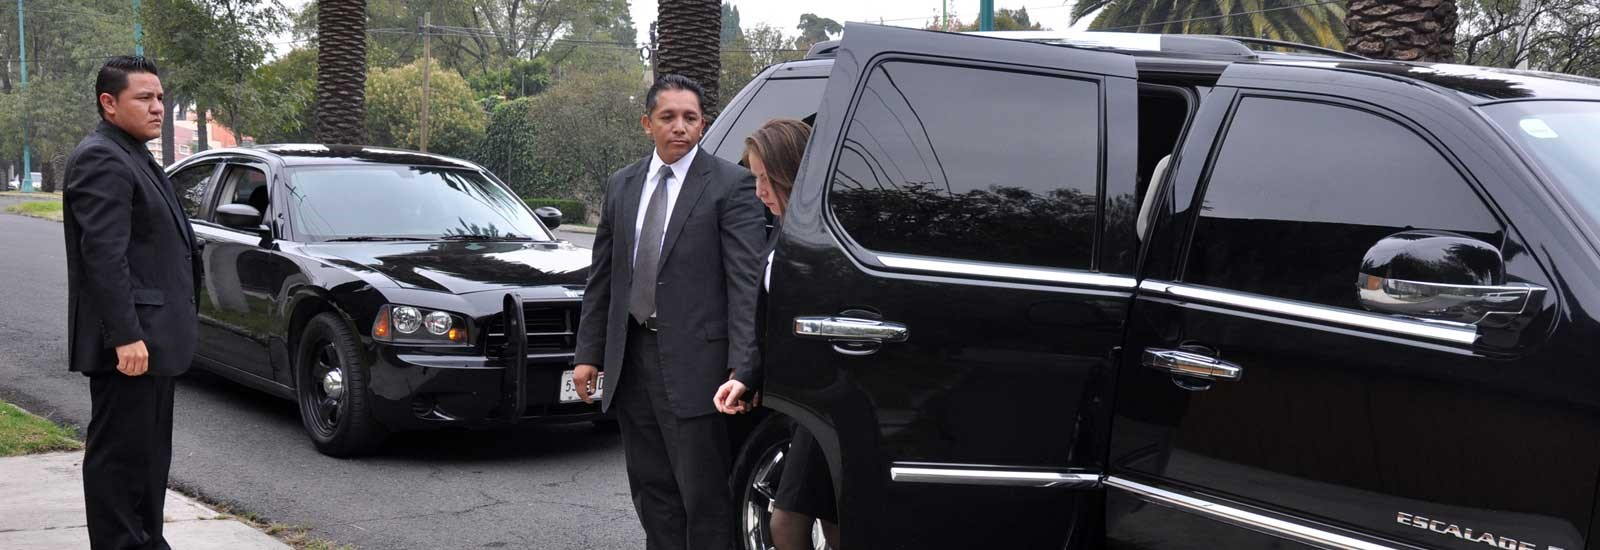 Protection Celebrity Vip Security Services